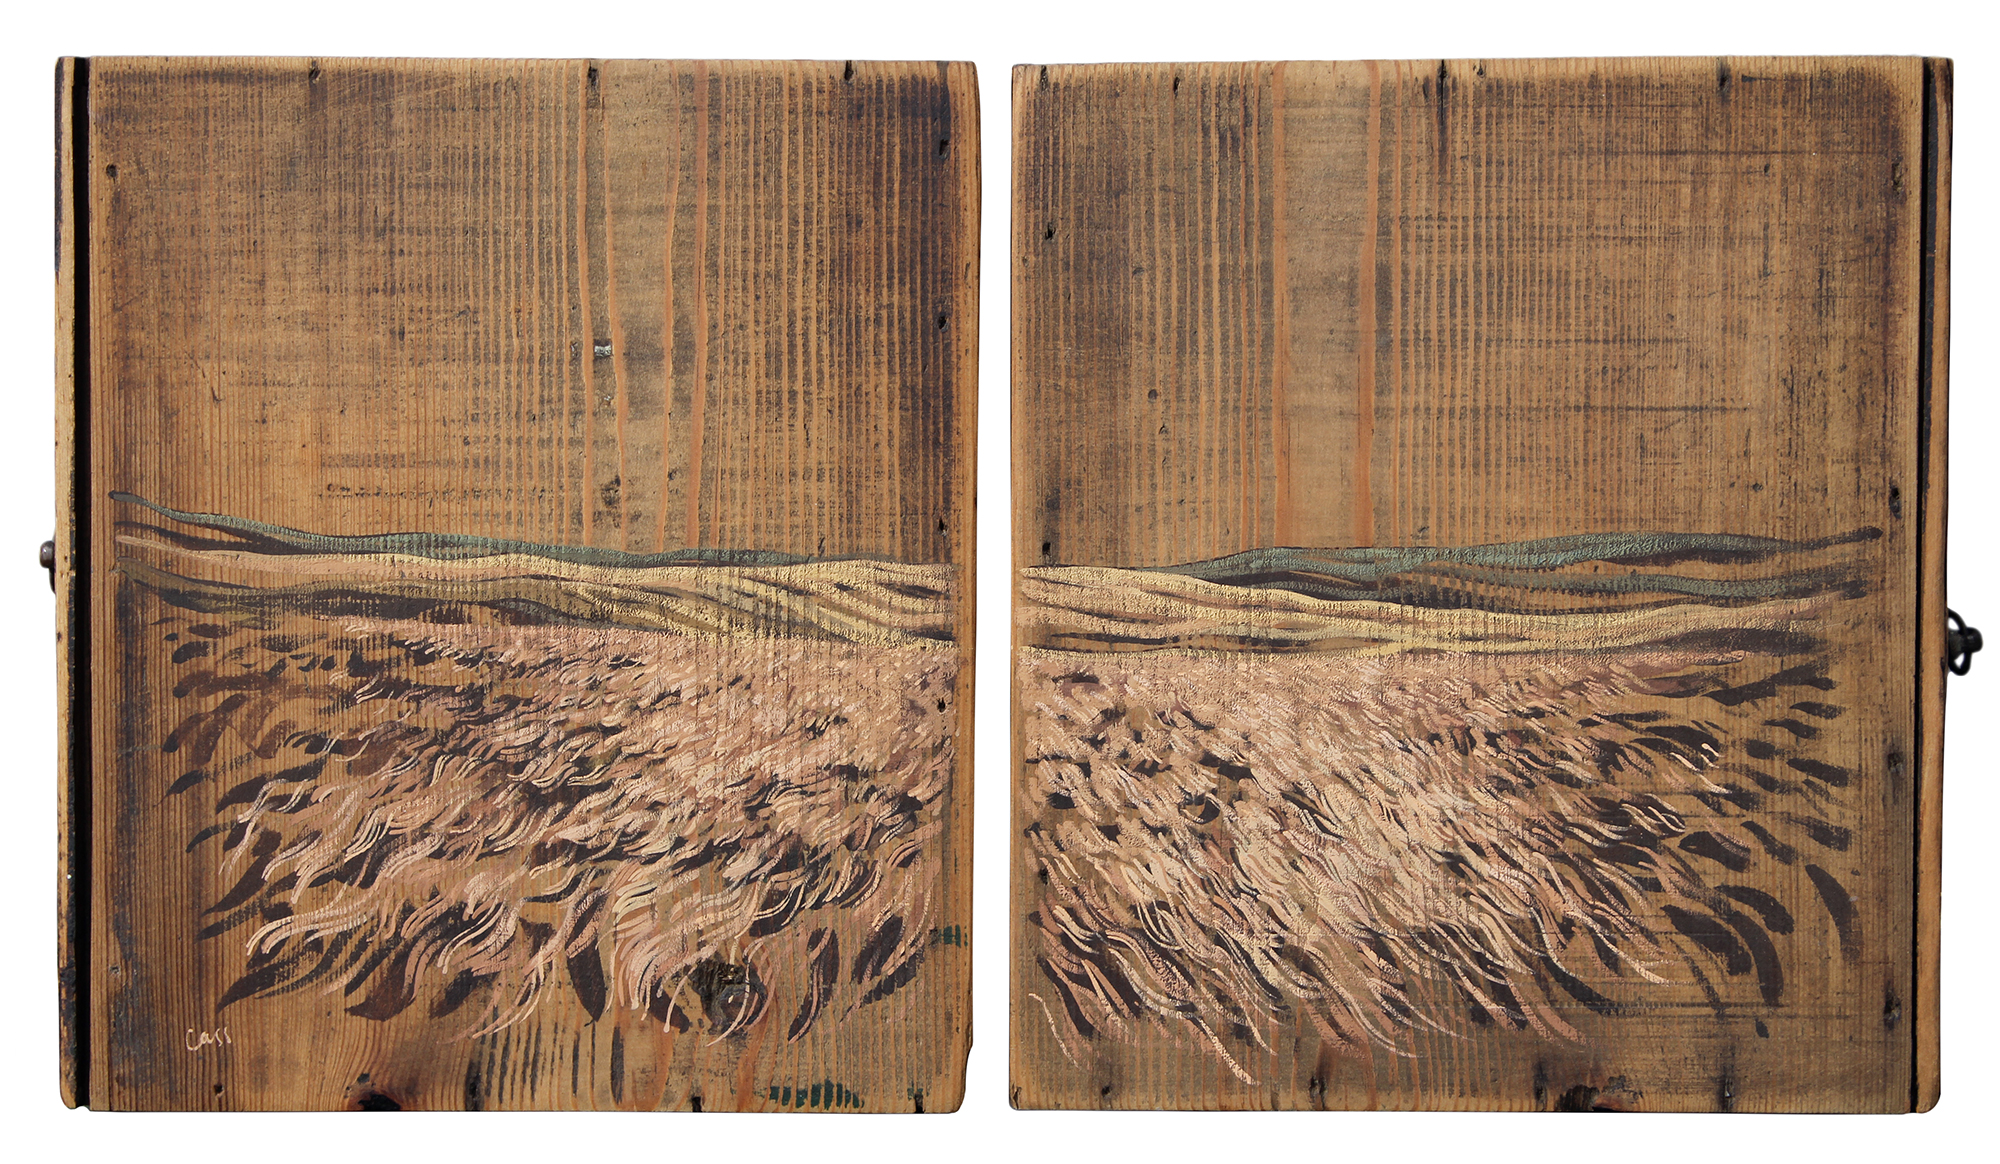 Two Seconds  (Lauder Moor) 2013 36.5 x 20.5 cm · Gouache on two drawer bases · Sold